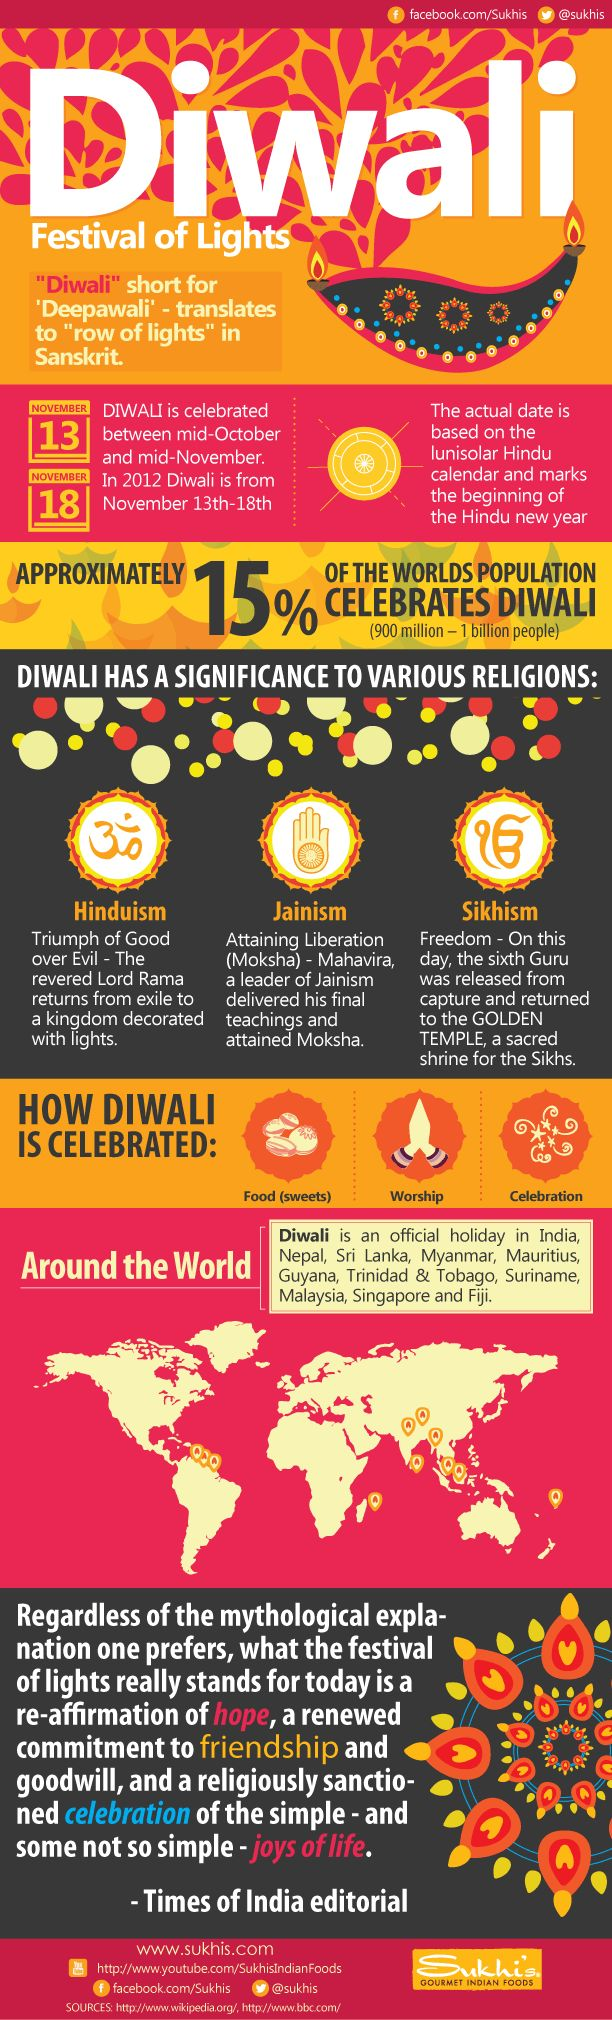 must see happy diwali pins hindu festival of lights diwali dutchess outreach would like to wish our hindu supporters a happy diwali short for deepavali this is a colourful festival celebrating the triumph of good